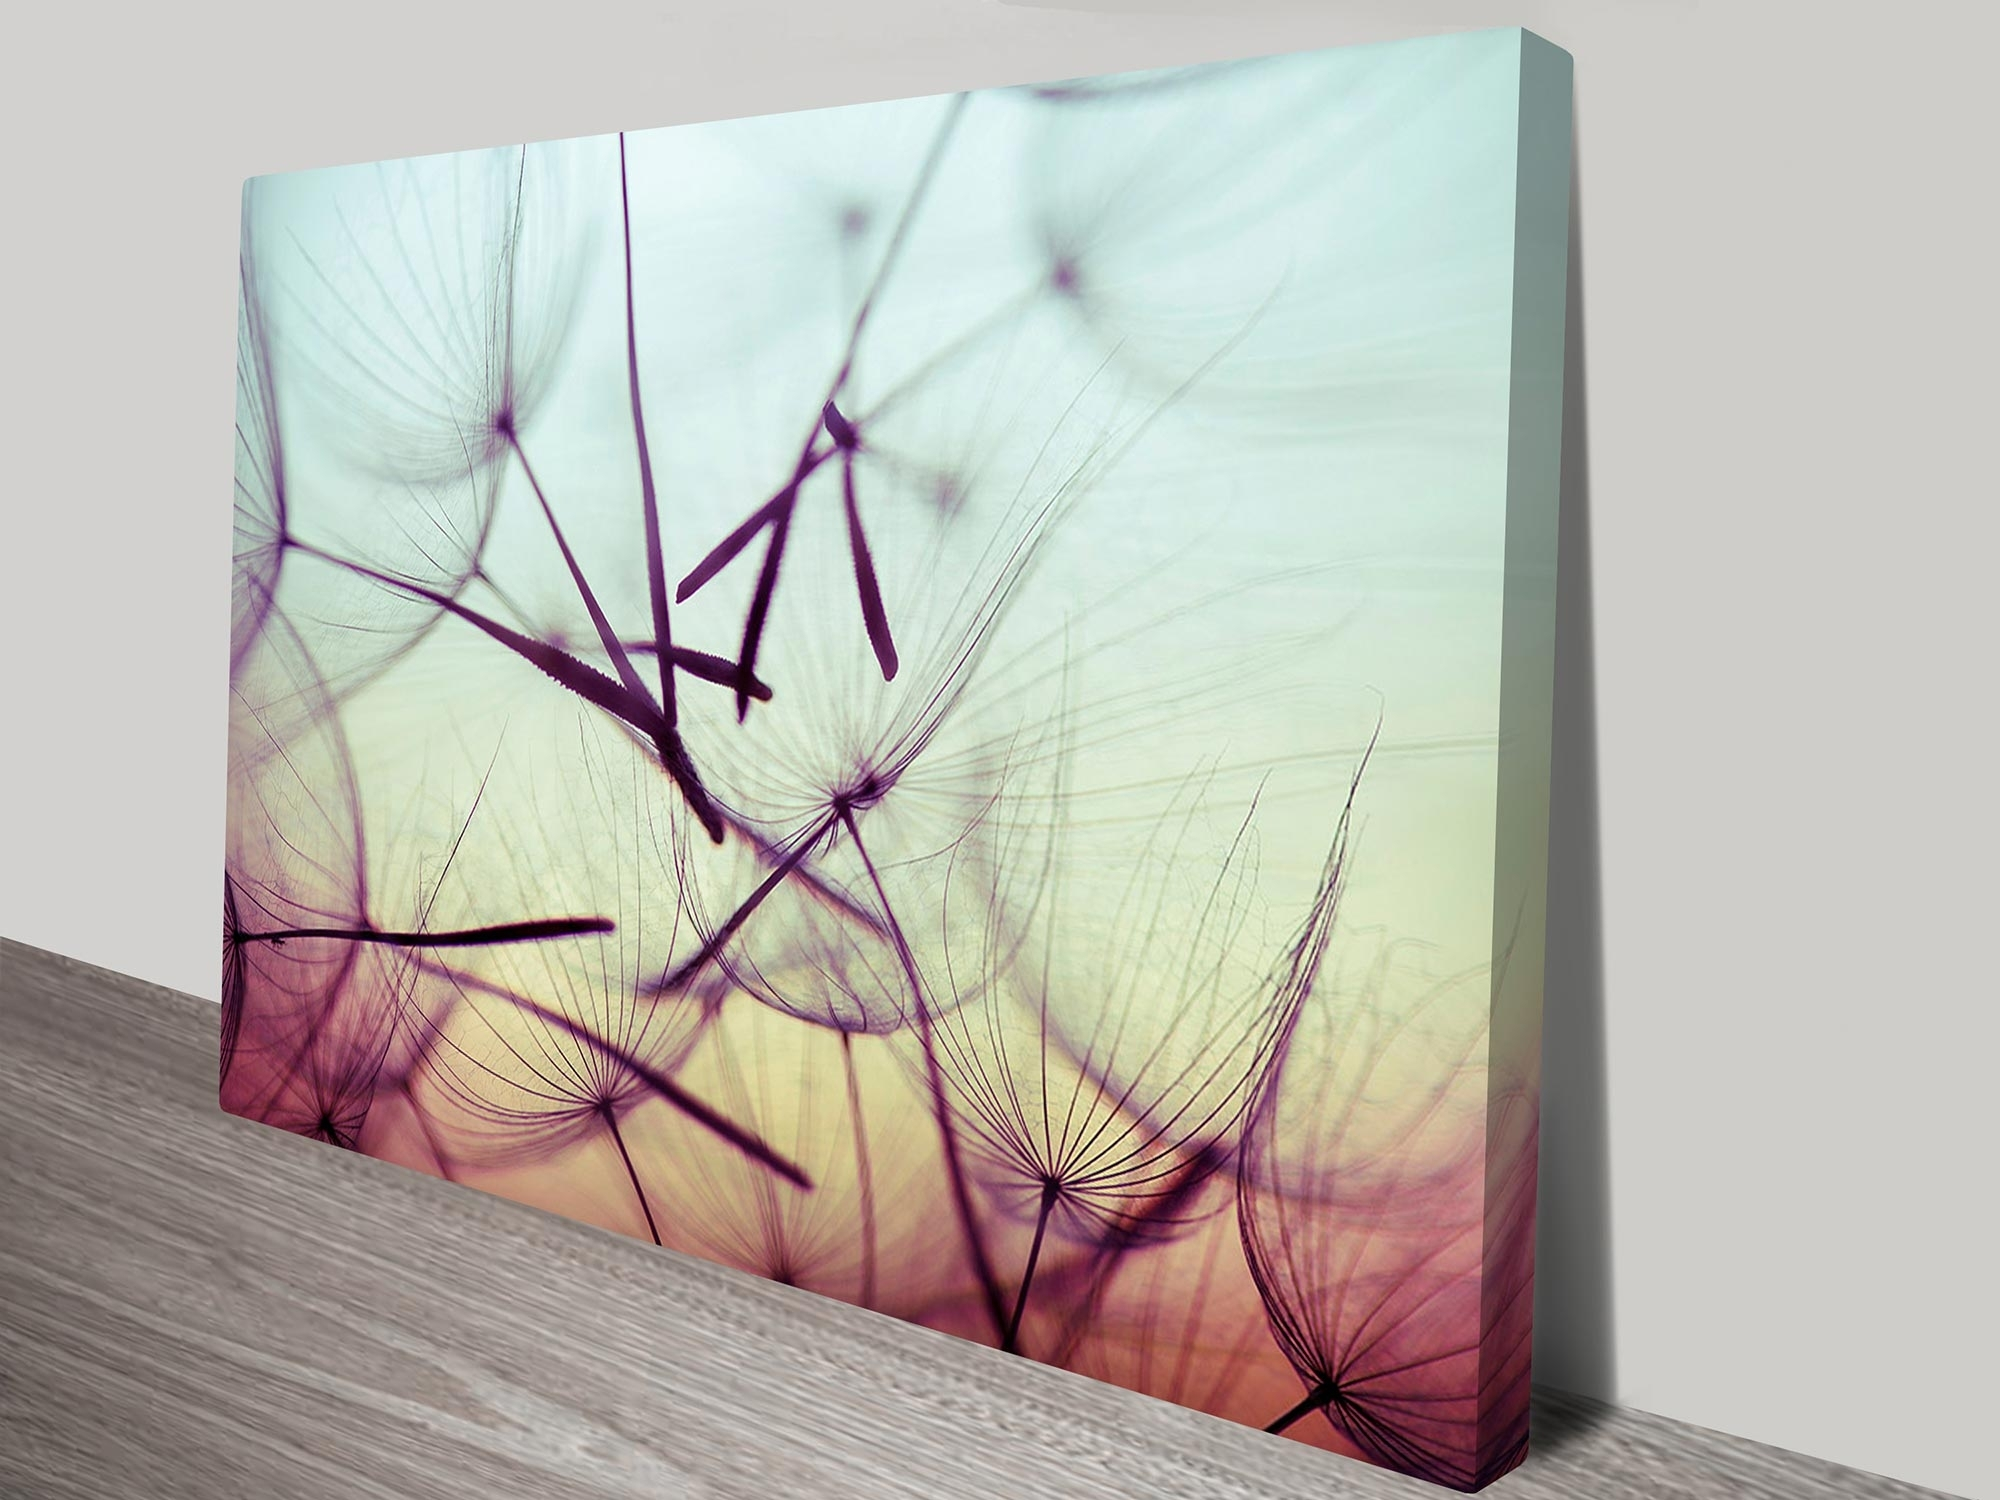 Seeds Floral Art On Canvas Print Australia Intended For Latest Dandelion Canvas Wall Art (View 11 of 15)